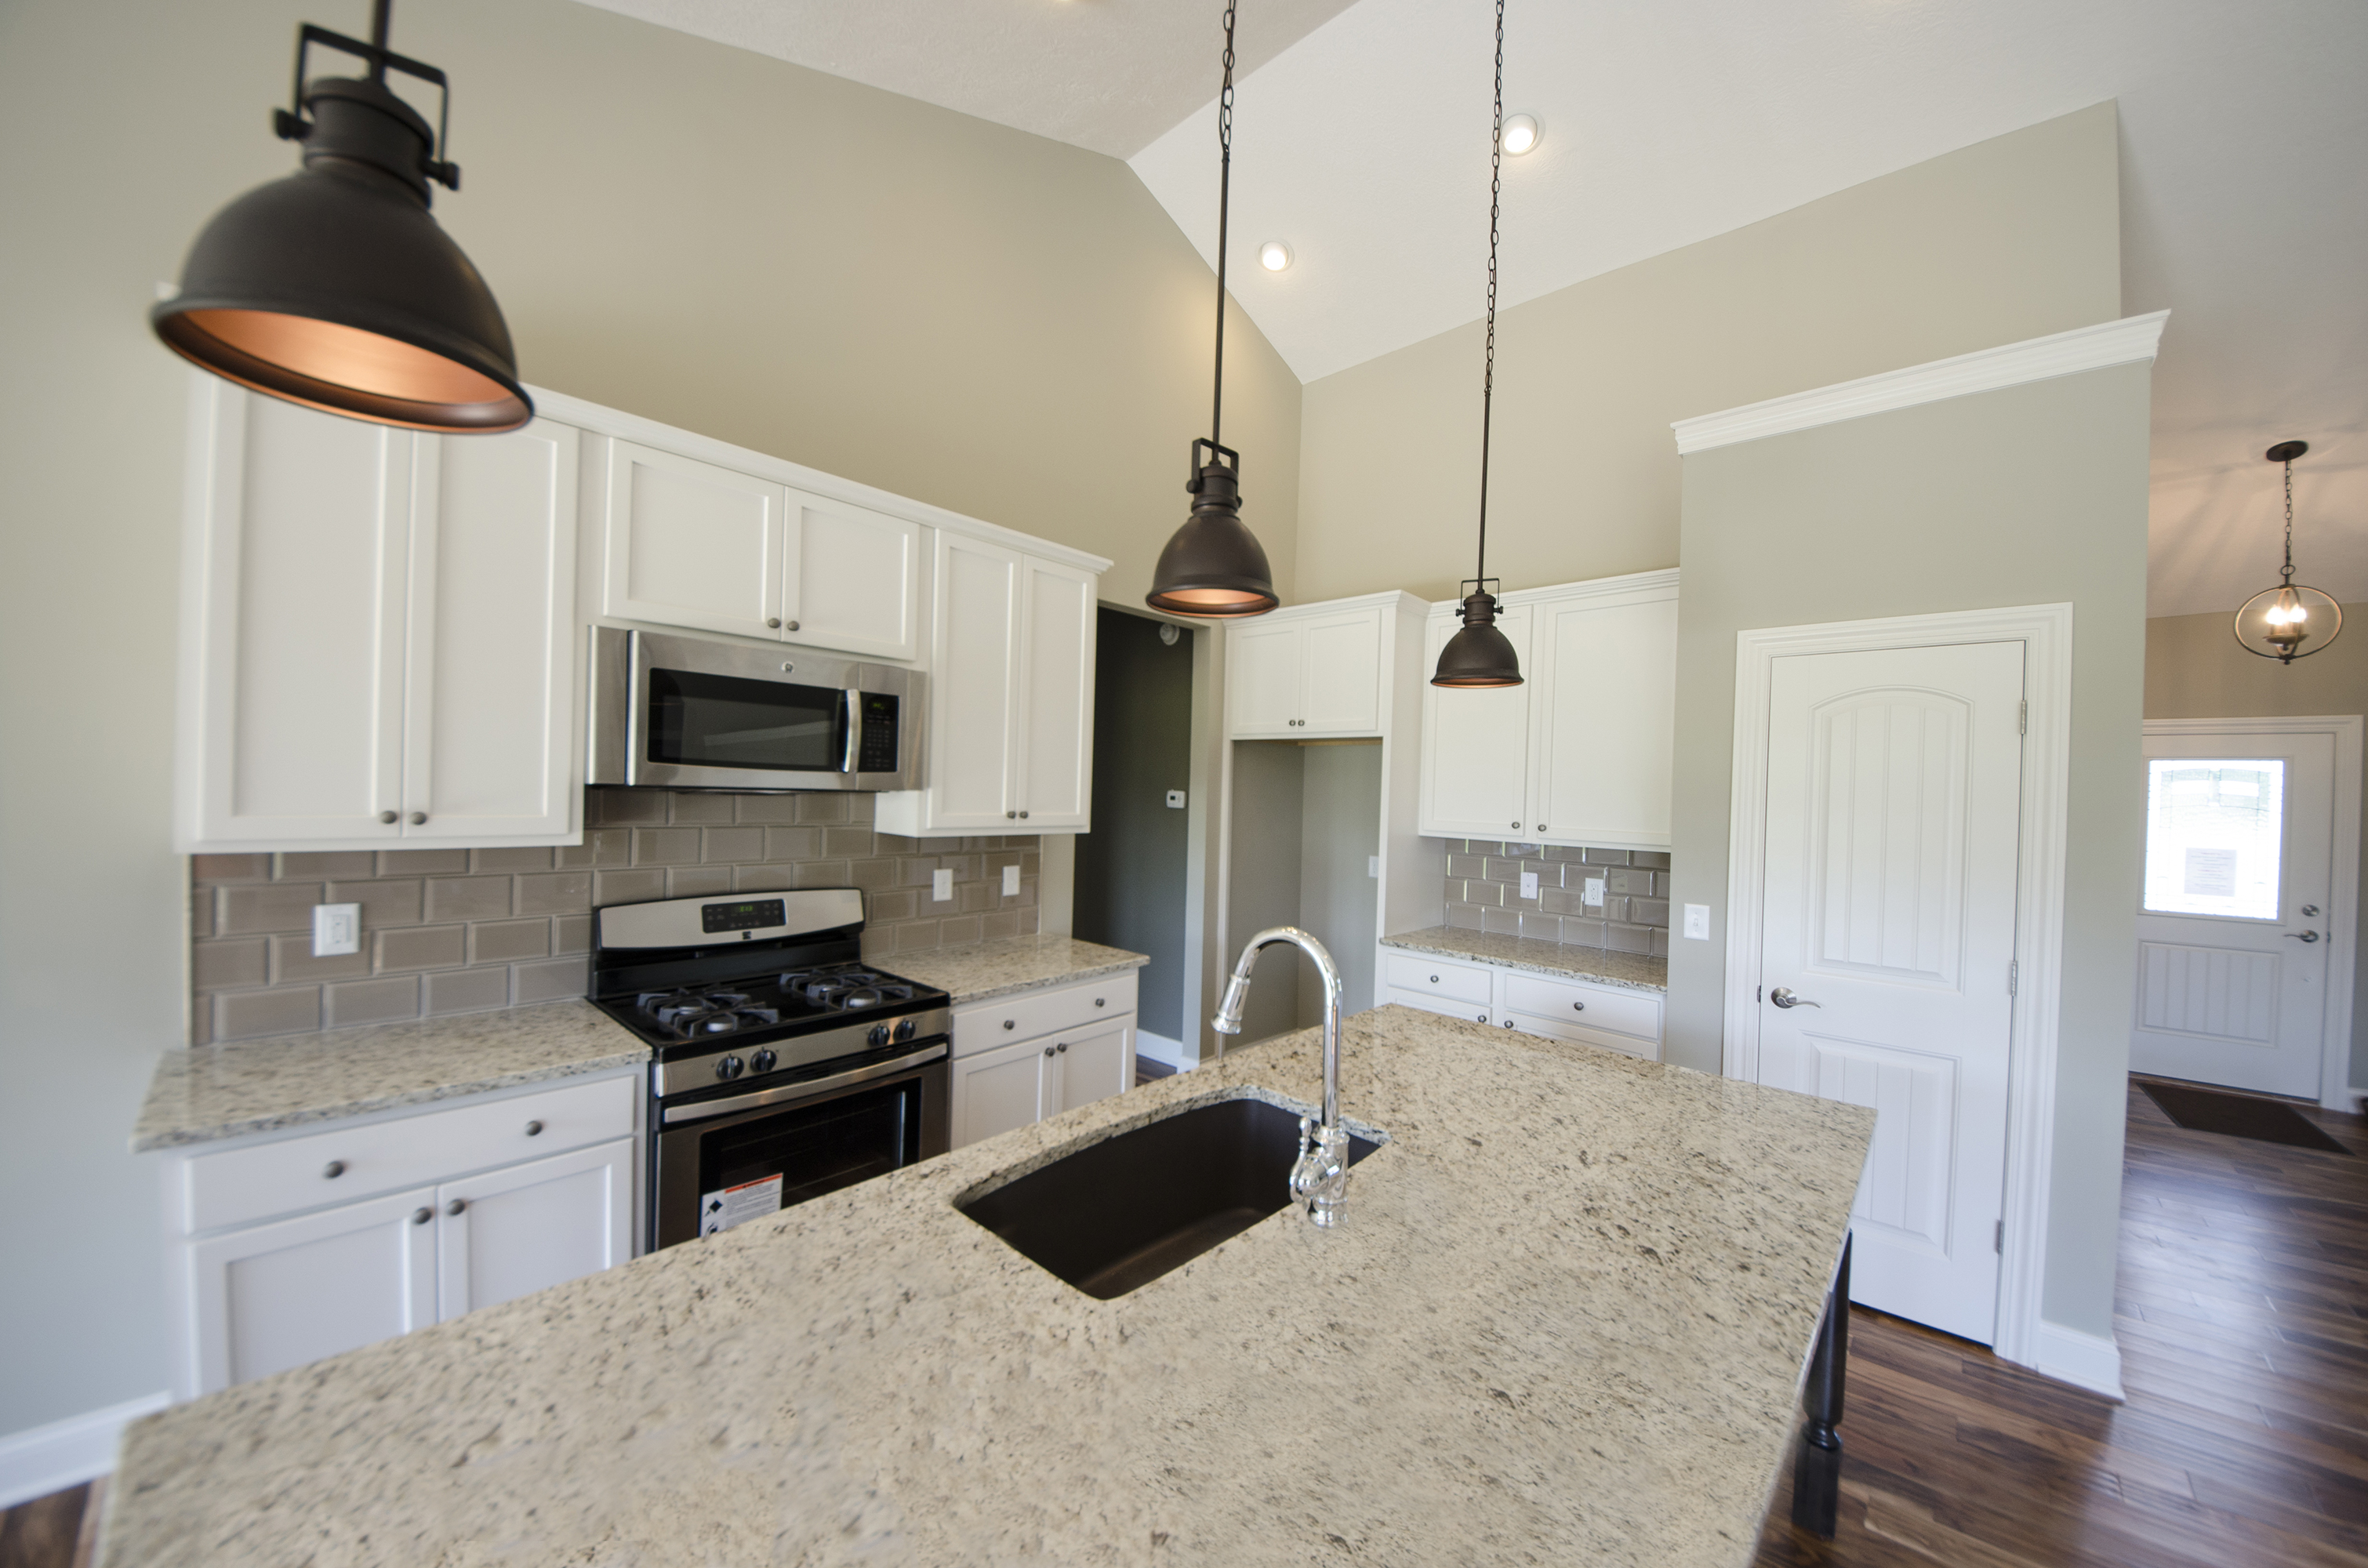 The Vermont | Clearcreek Township - Design Homes